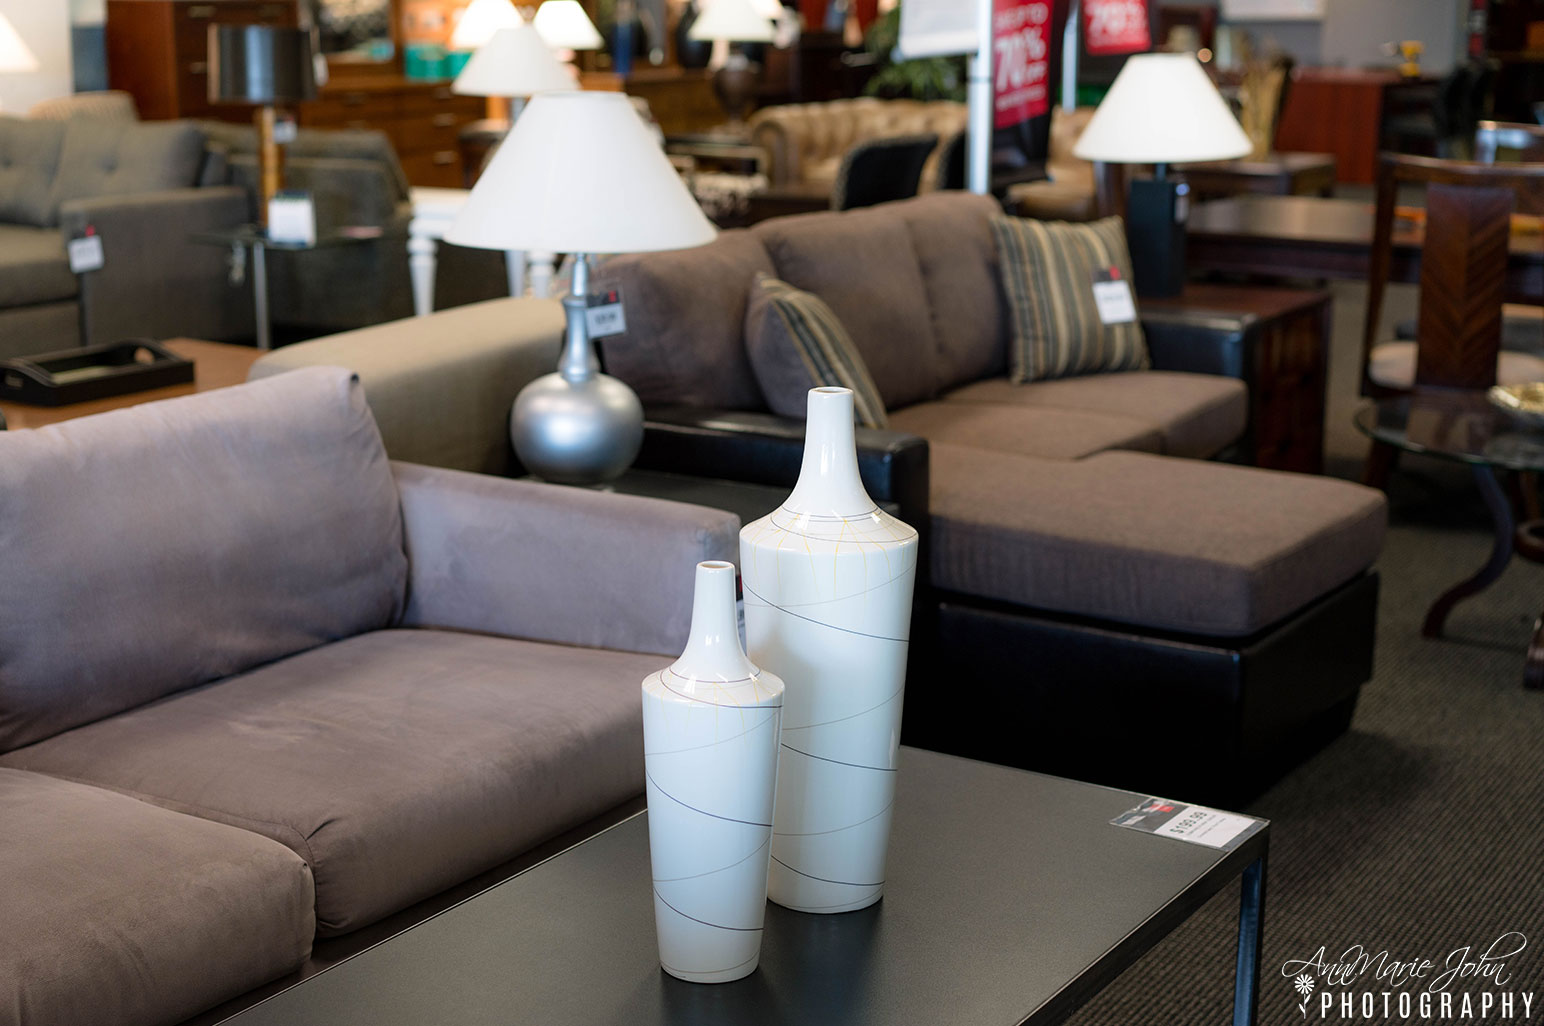 2 Great Reasons To Use Cort Furniture Rental Annmarie John